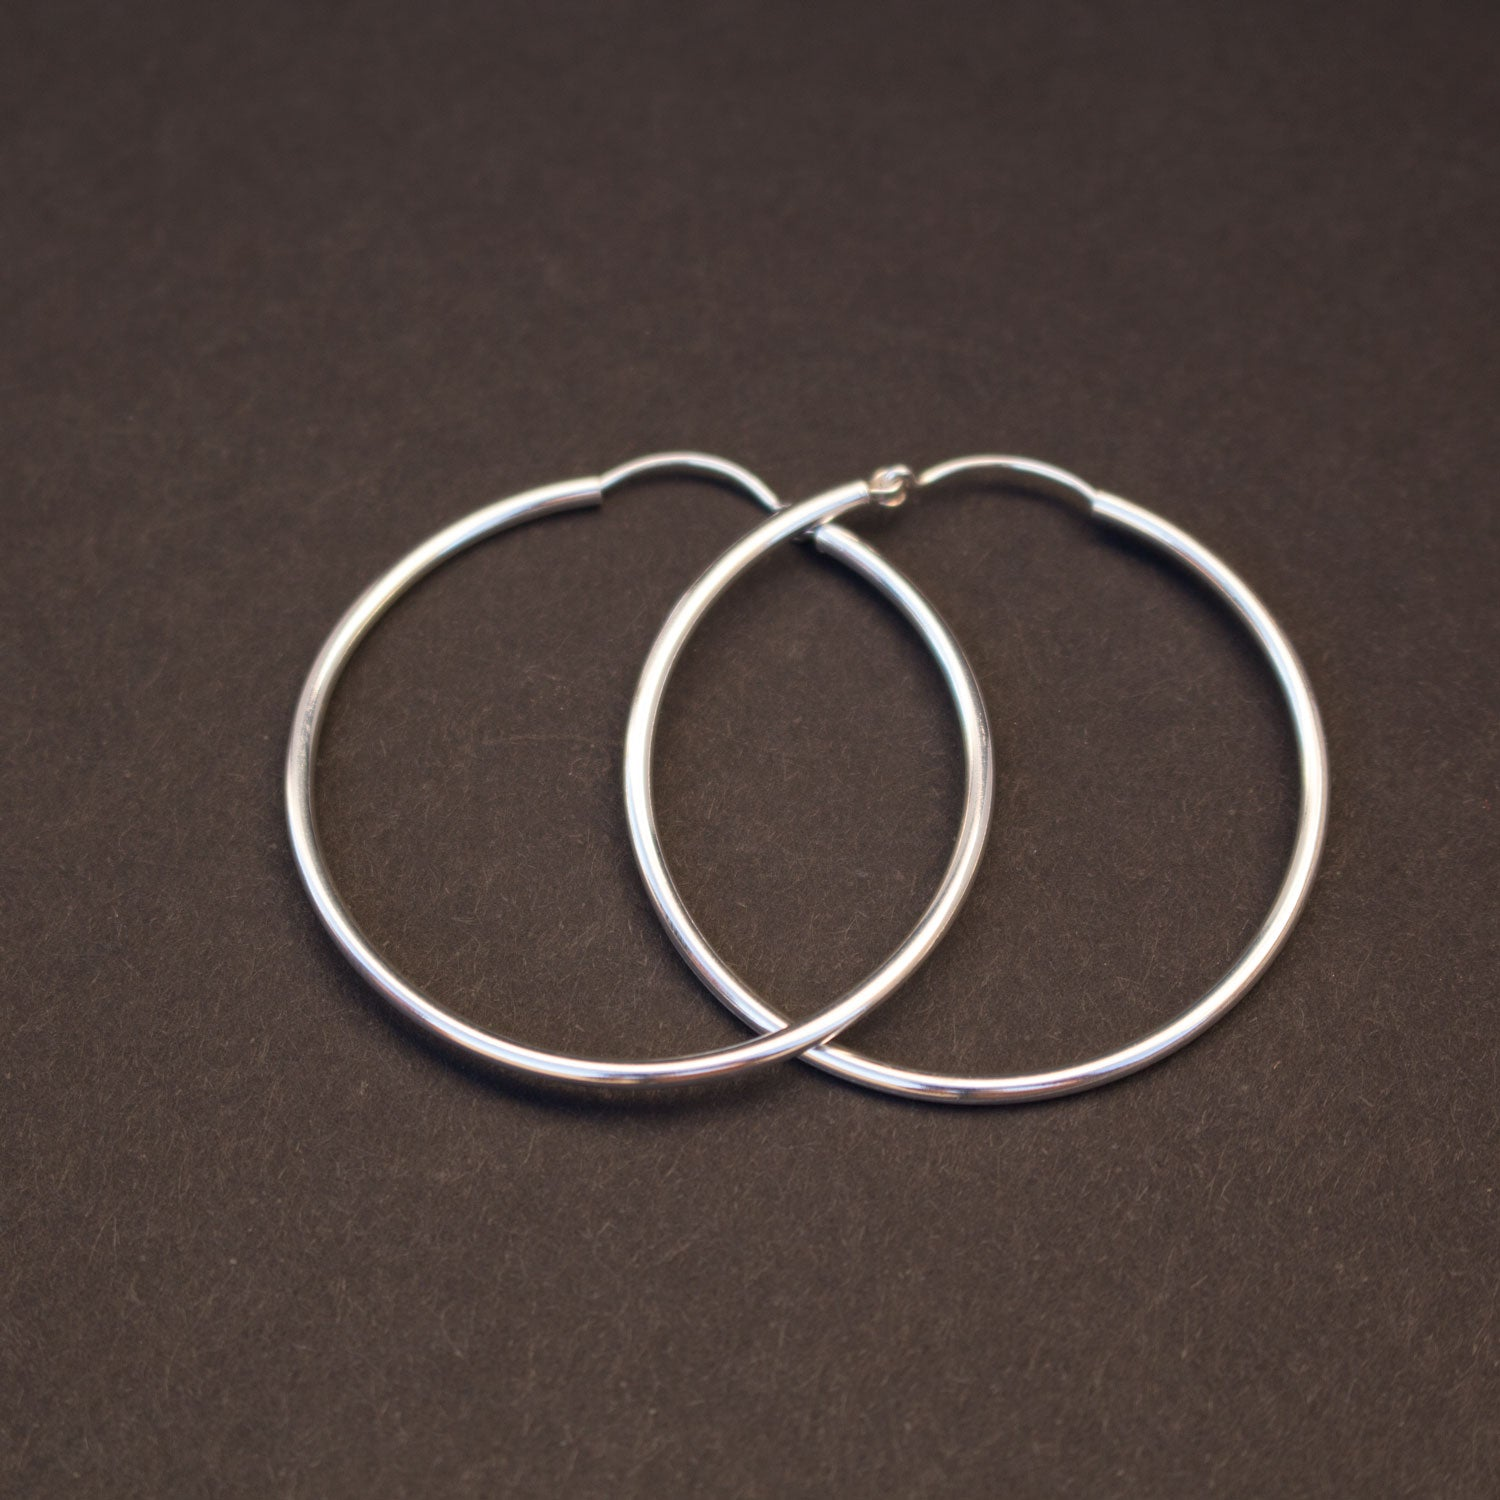 Simple sterling silver hoops